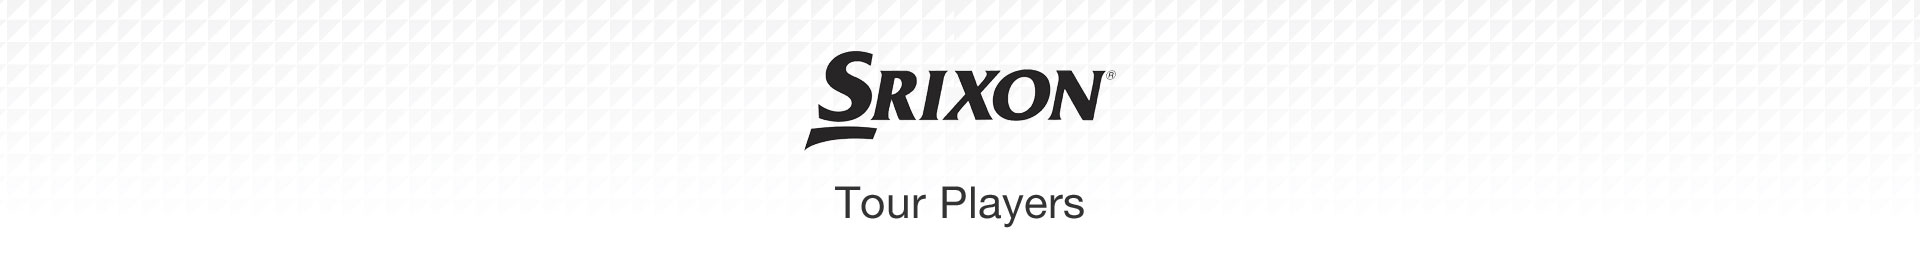 Srixon Tour Players